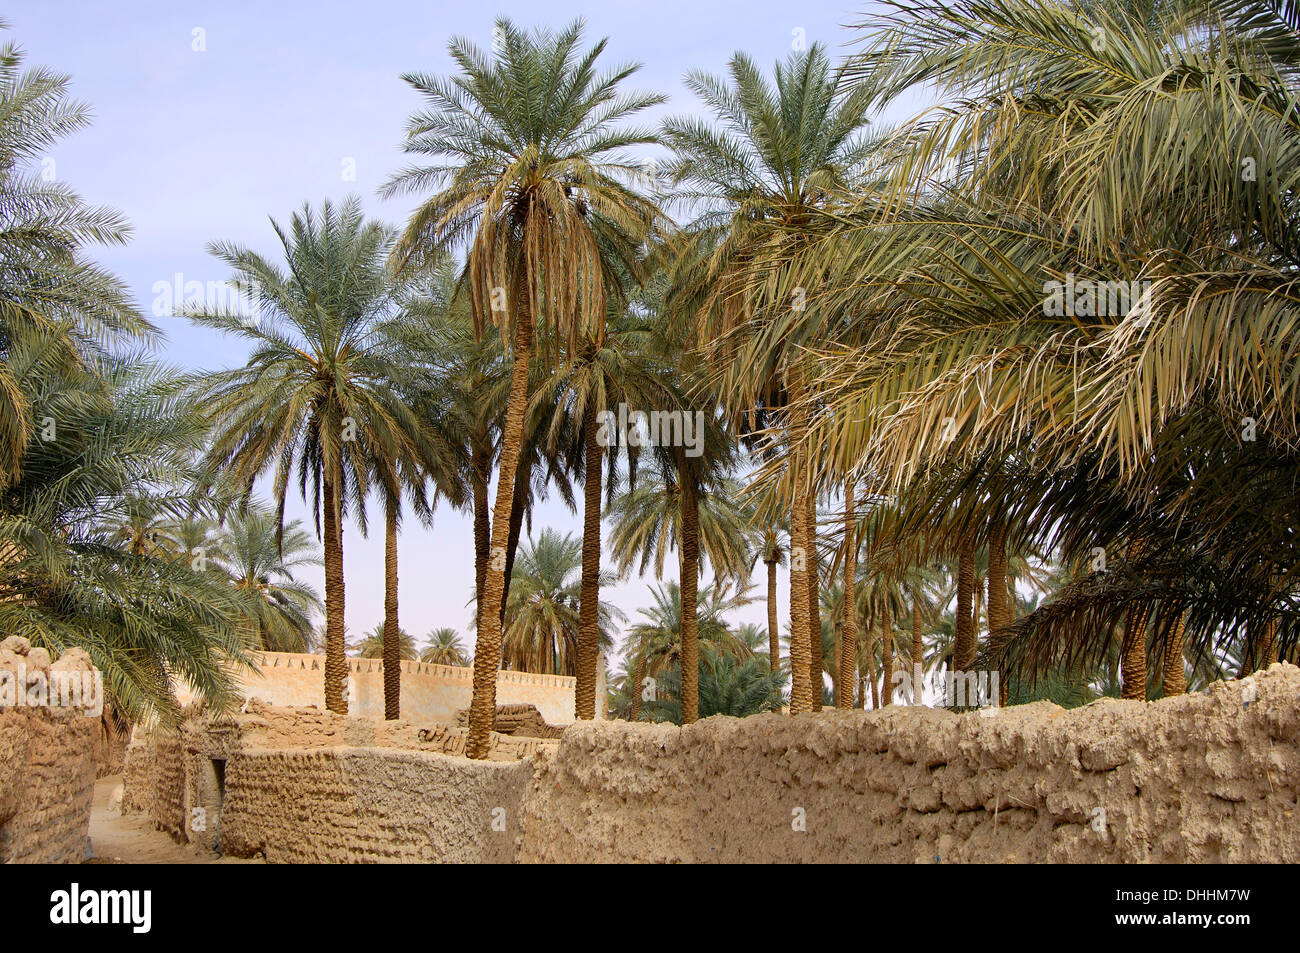 Palm garden in the oasis town of Ghadames, UNESCO world heritage ...